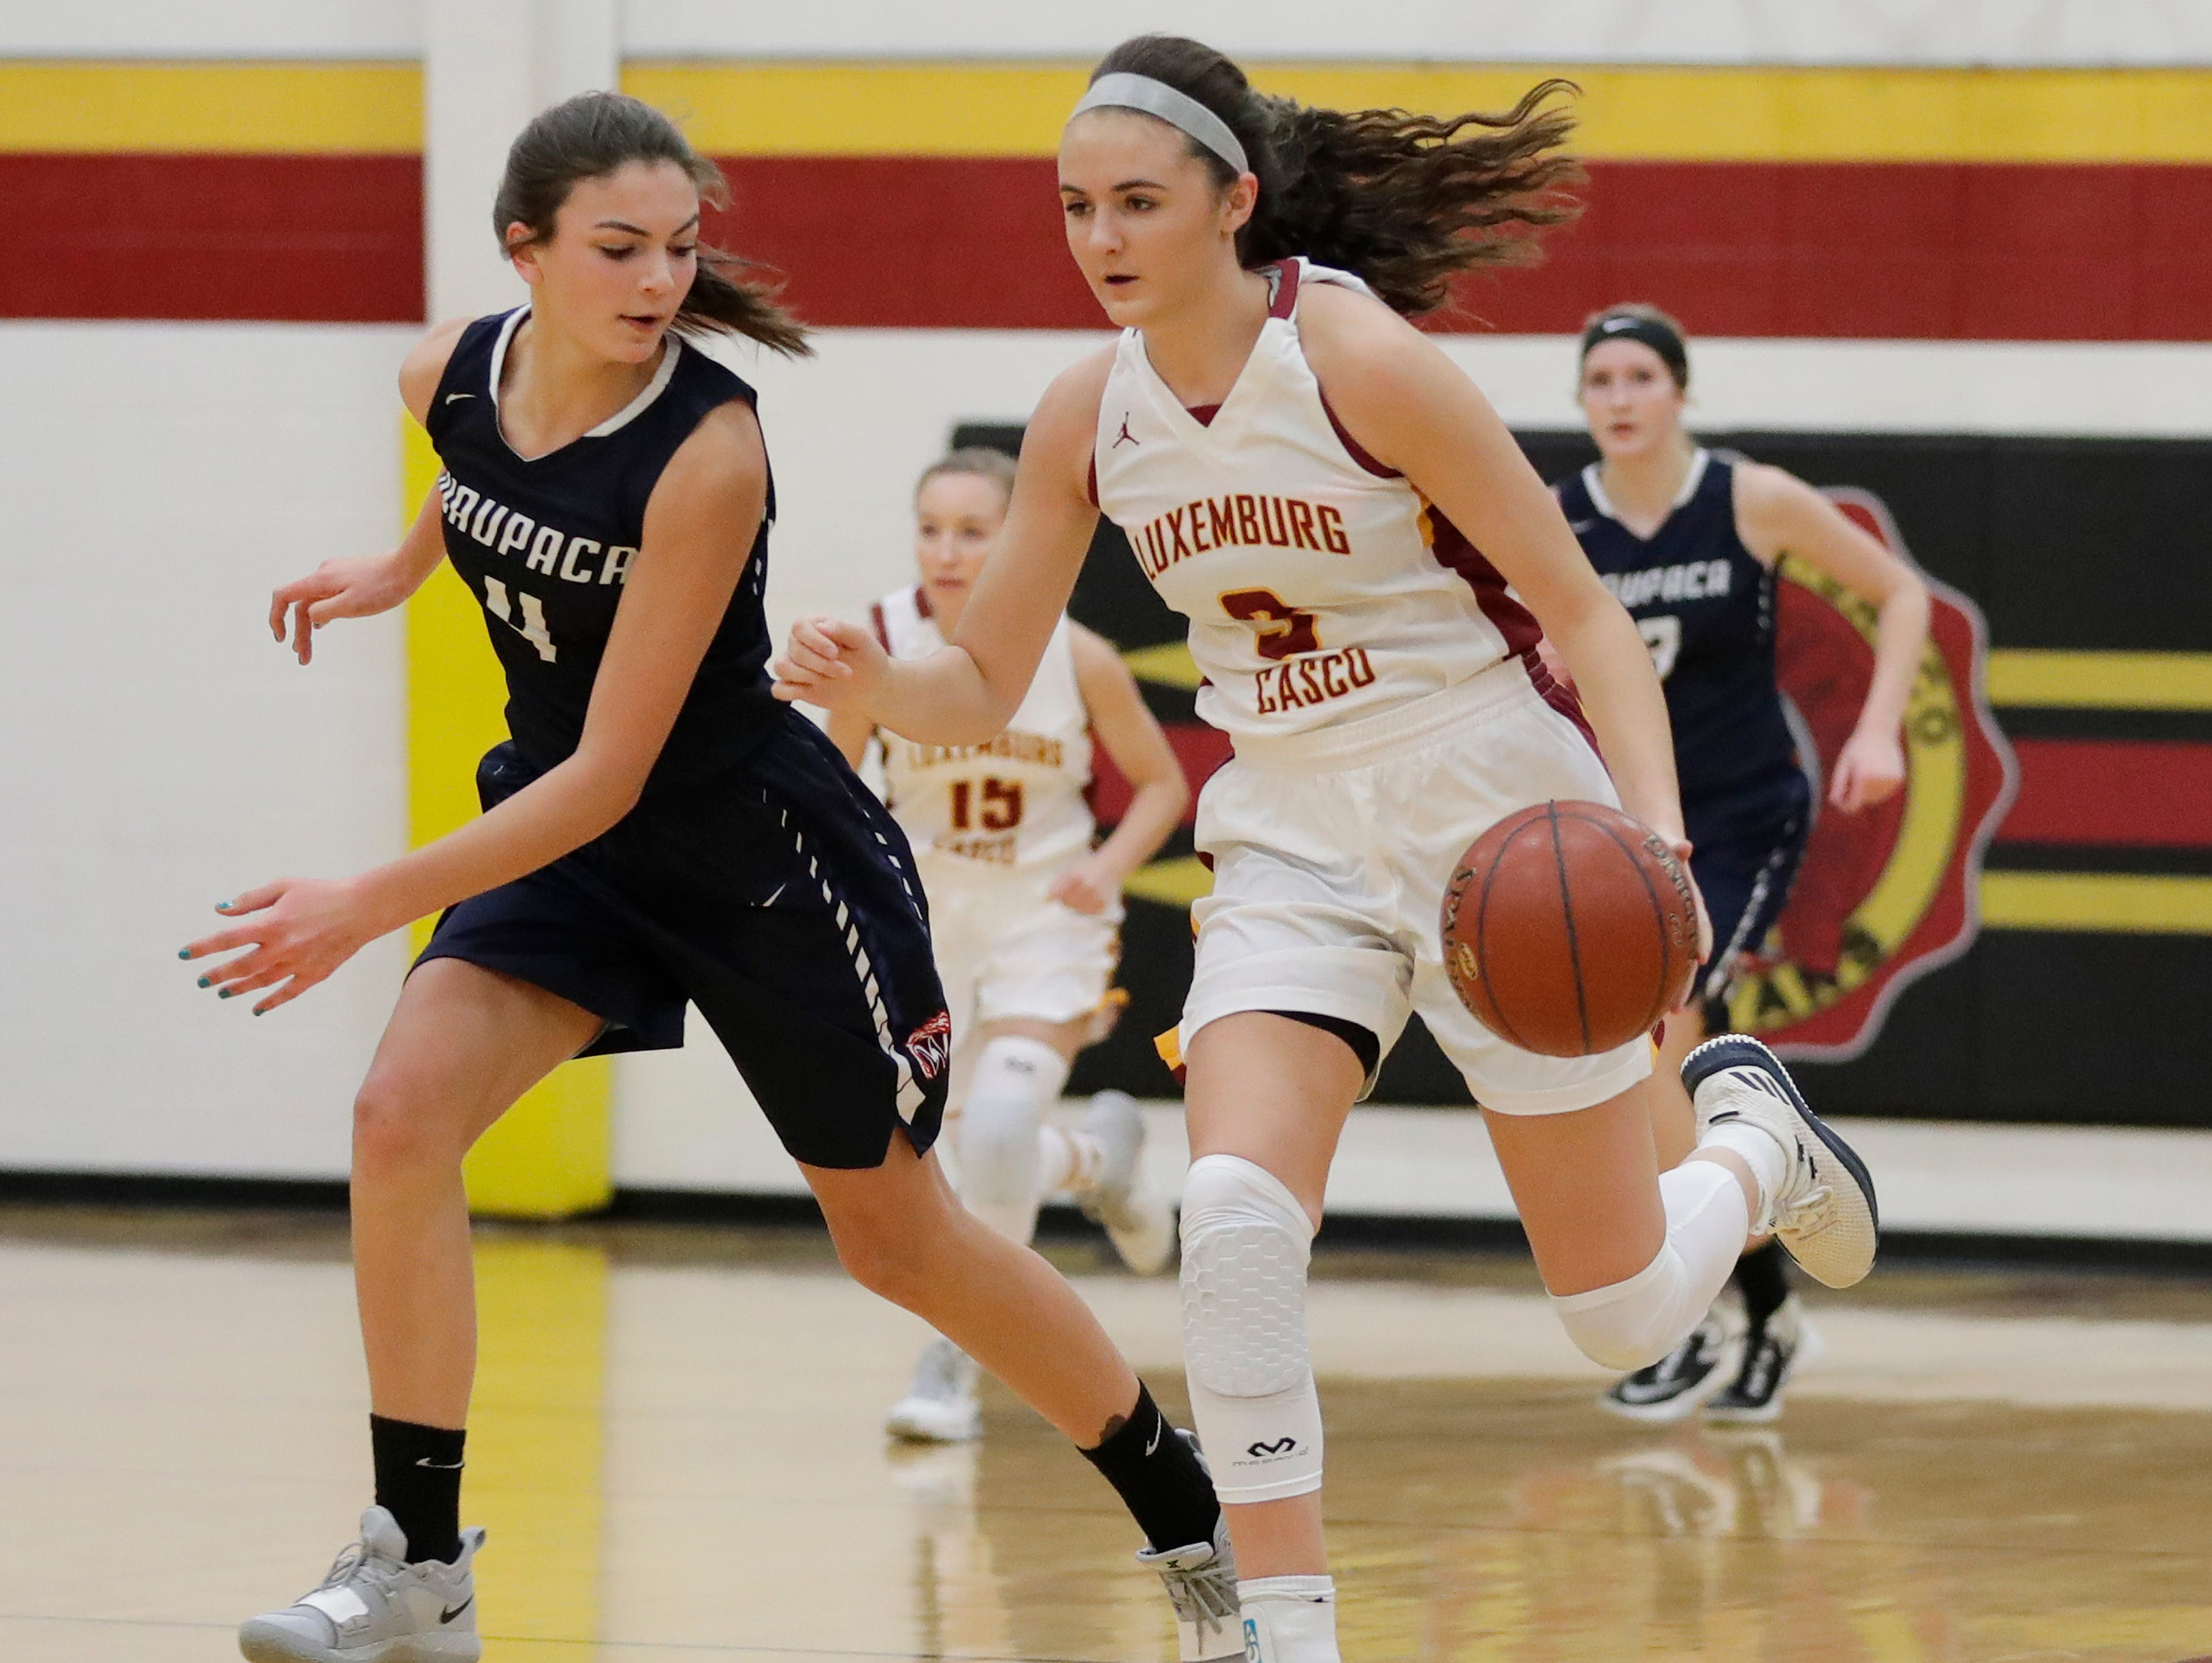 Luxemburg-Casco's Cassie Schiltz (3) gets a steal on her way to breaking the school's all-time scoring record with her 1679th point in a girls basketball game against Waupaca at Luxemburg-Casco high school on Thursday, January 10, 2019 in Luxemburg, Wis. The record was previously set at 1678 by Rachel Porath in 2004.